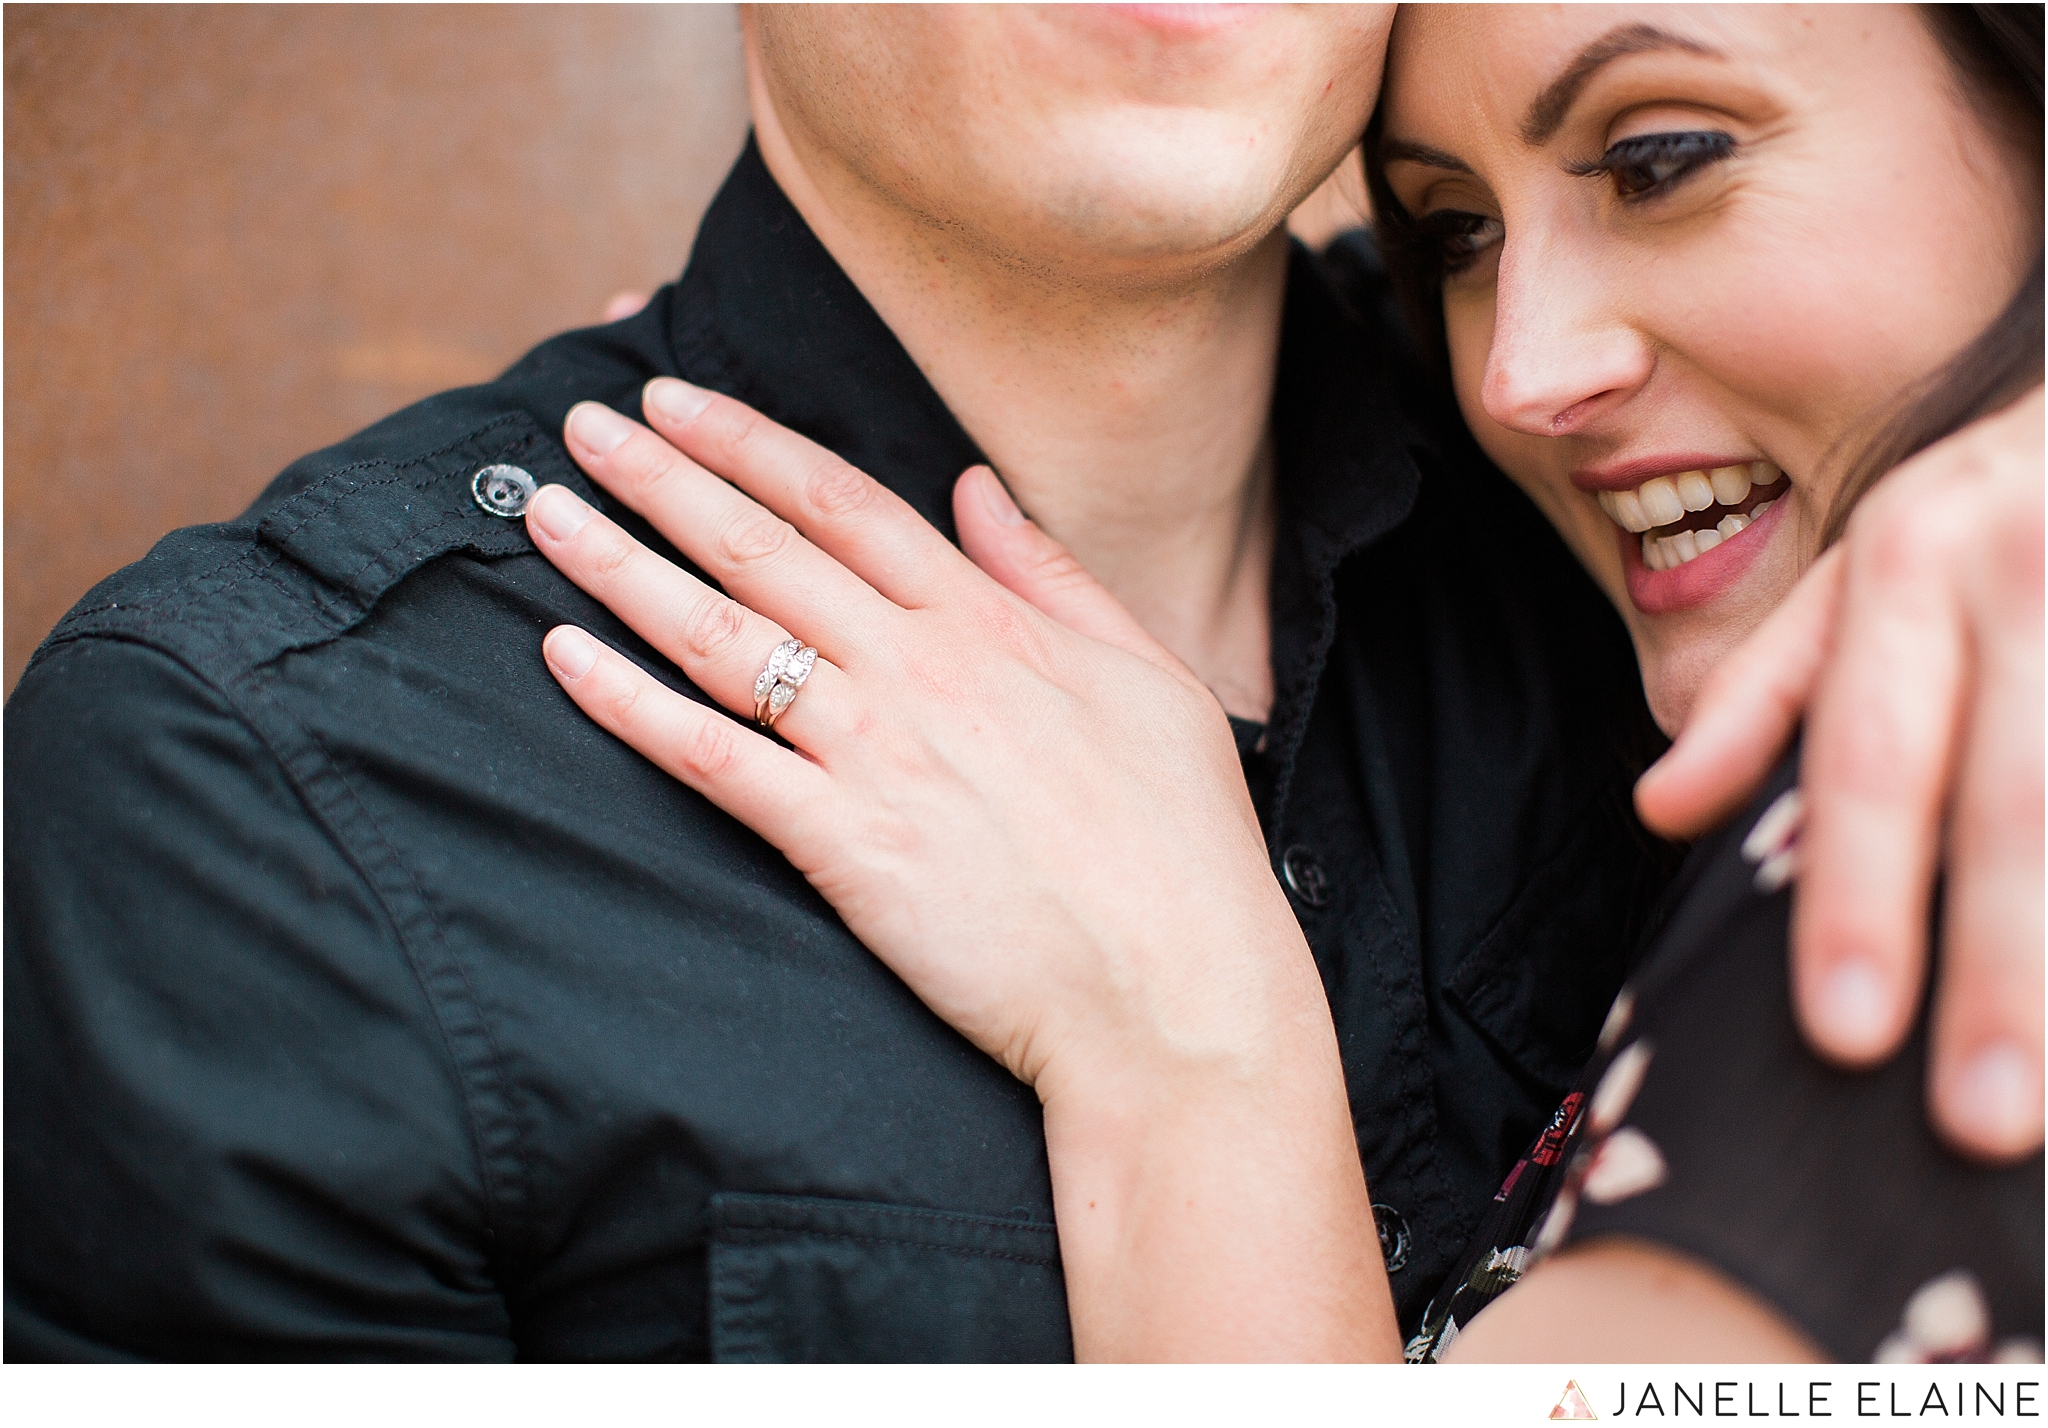 karen ethan-georgetown engagement photos-seattle-janelle elaine photography-37.jpg